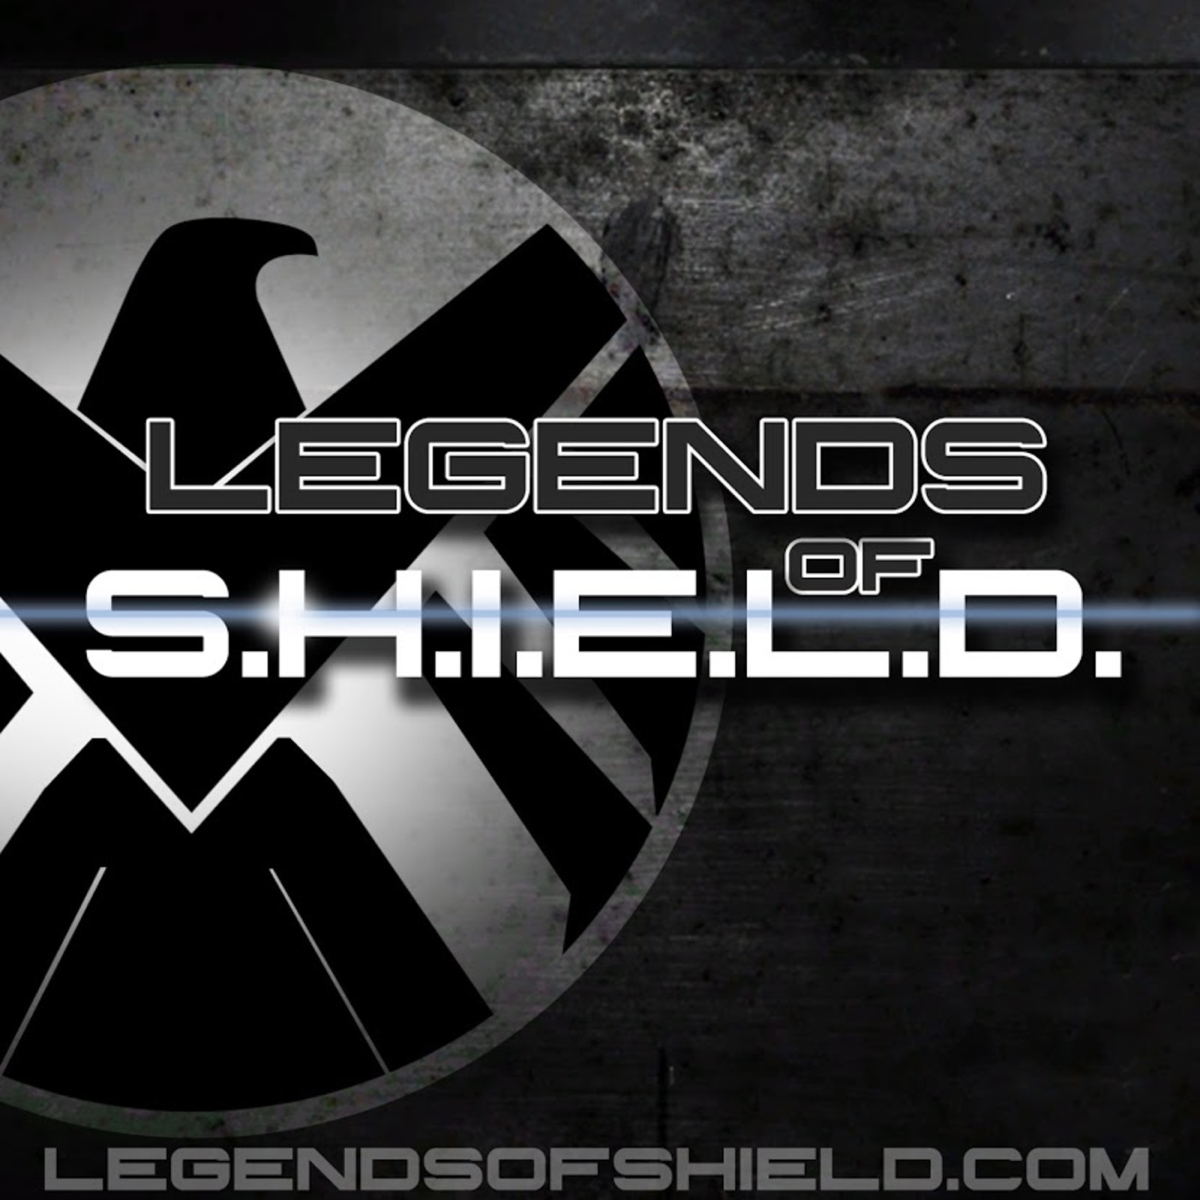 Best Episodes Of Legends Shield On Podyssey Podcasts Amazoncom Sg Tool Aid 25100 Short Tester Automotive